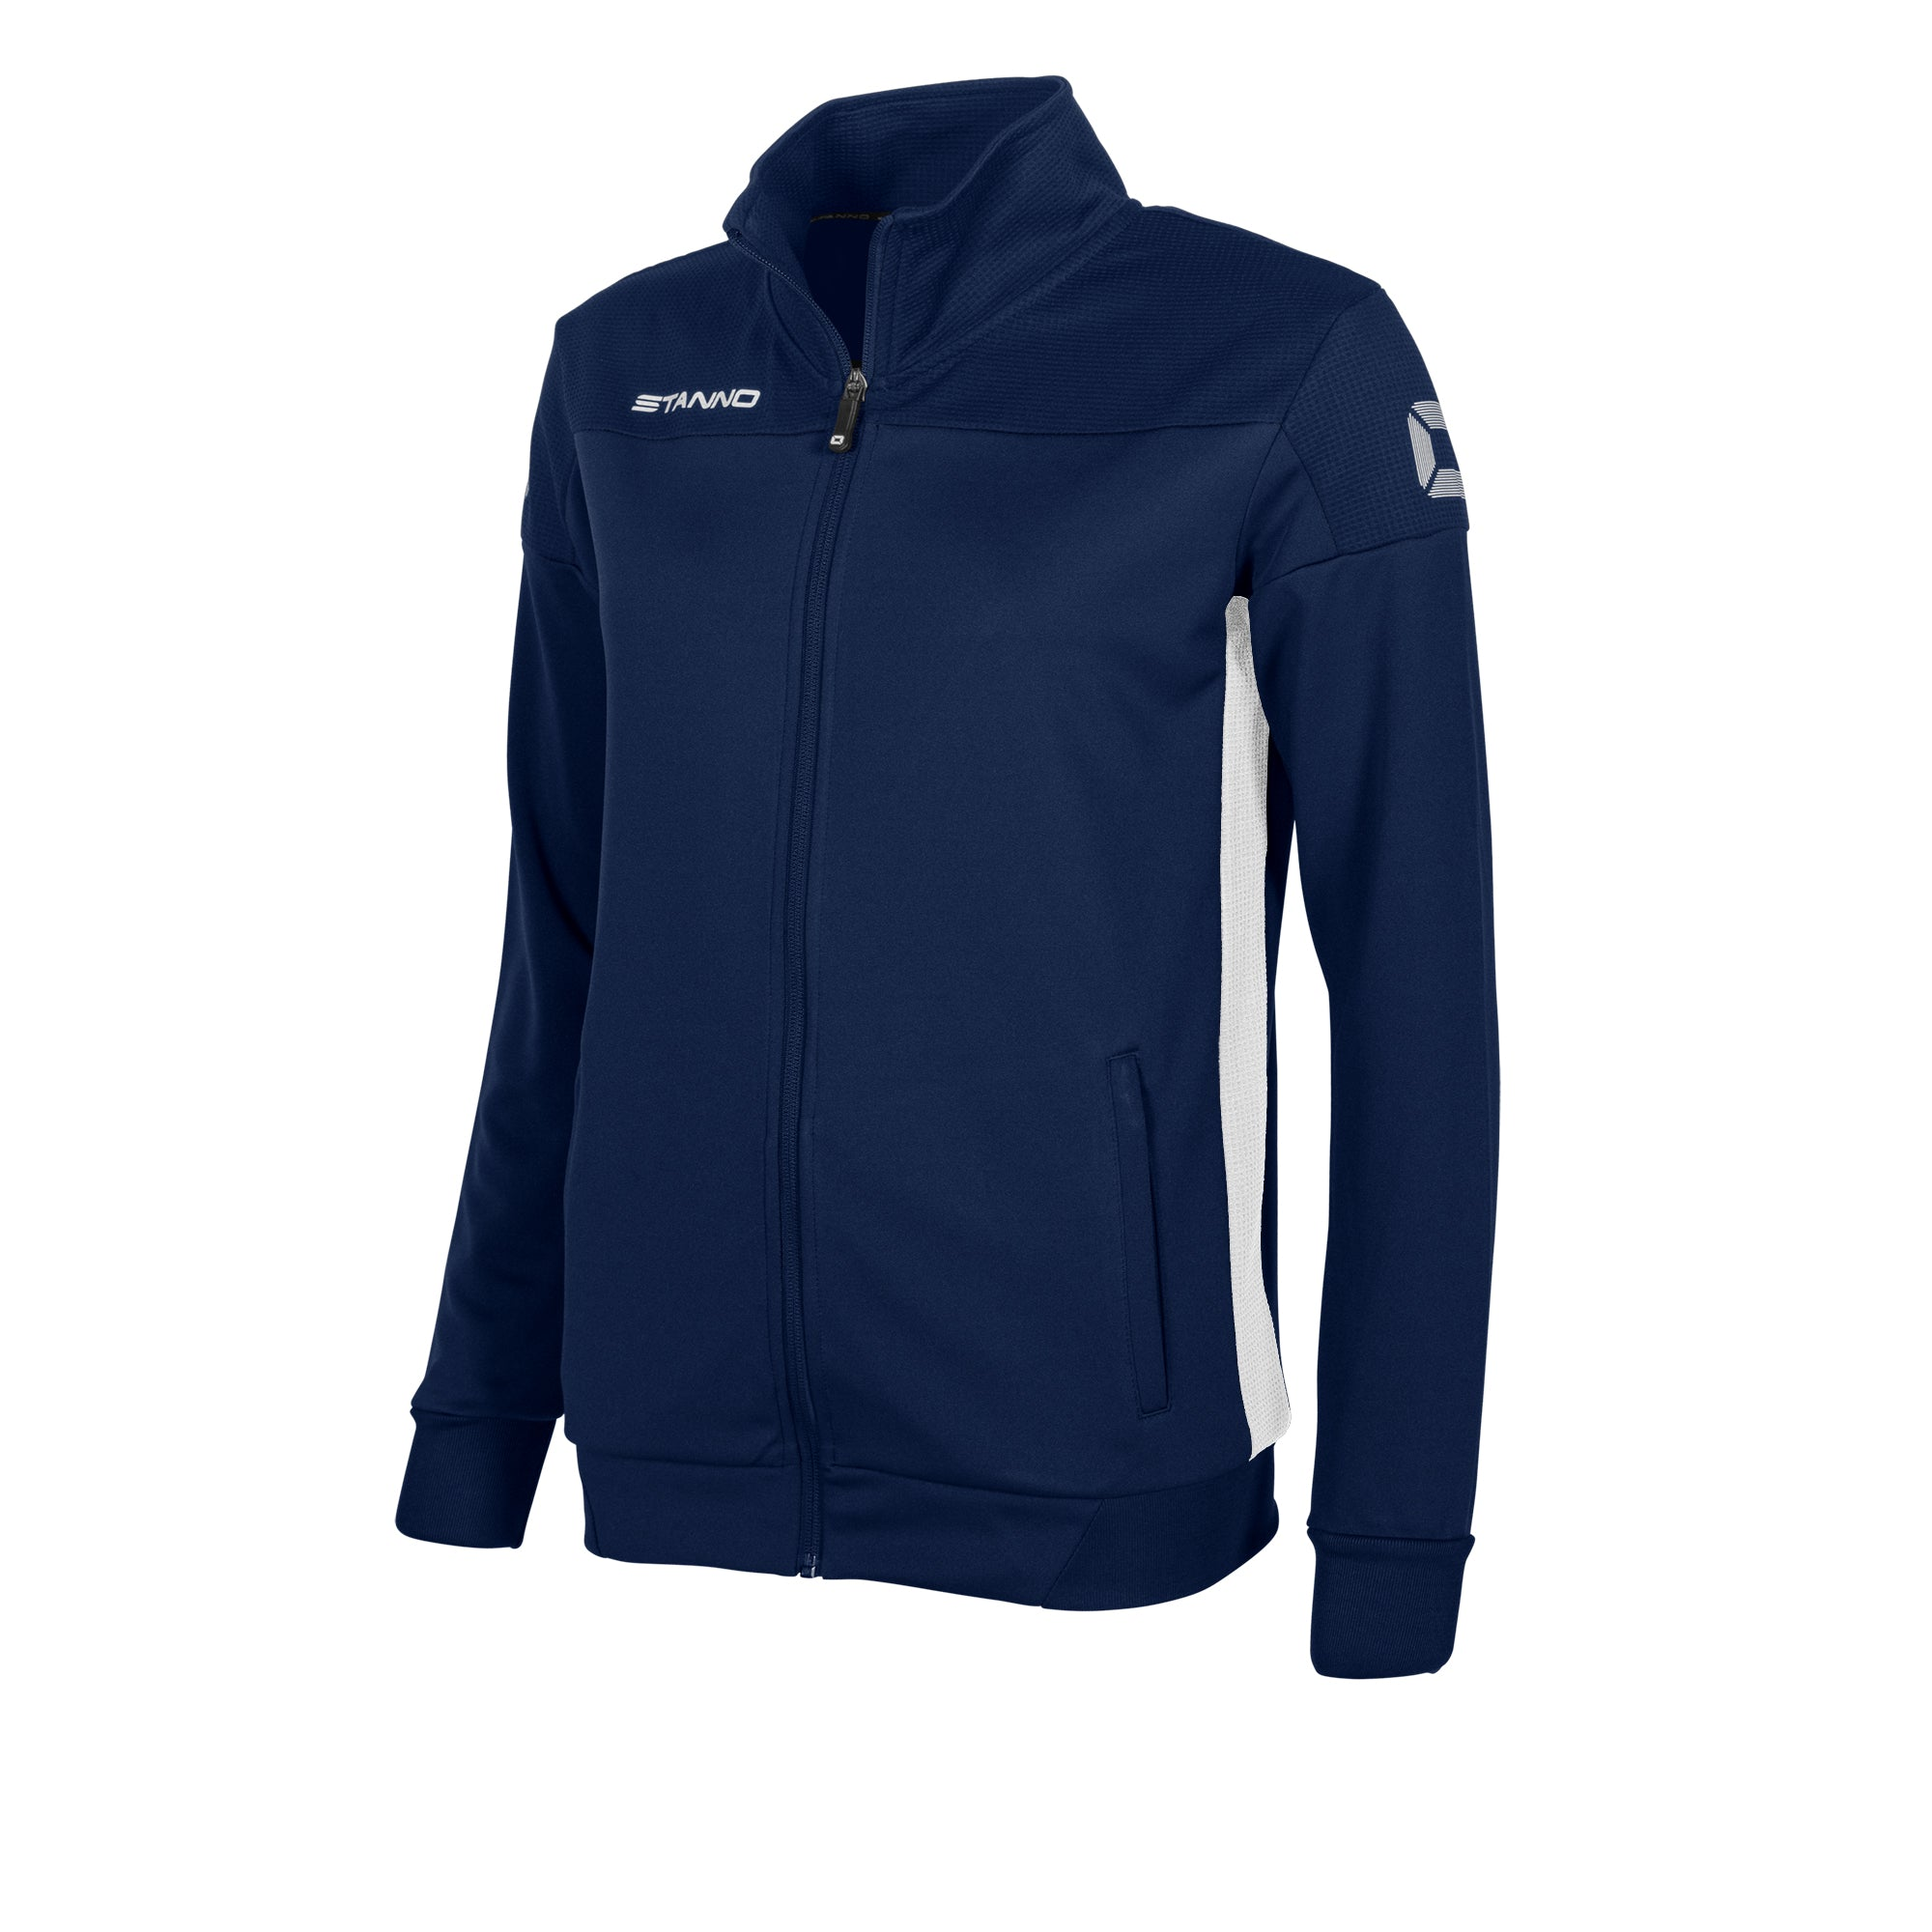 Stanno Pride TTS Jacket Ladies - Navy/White